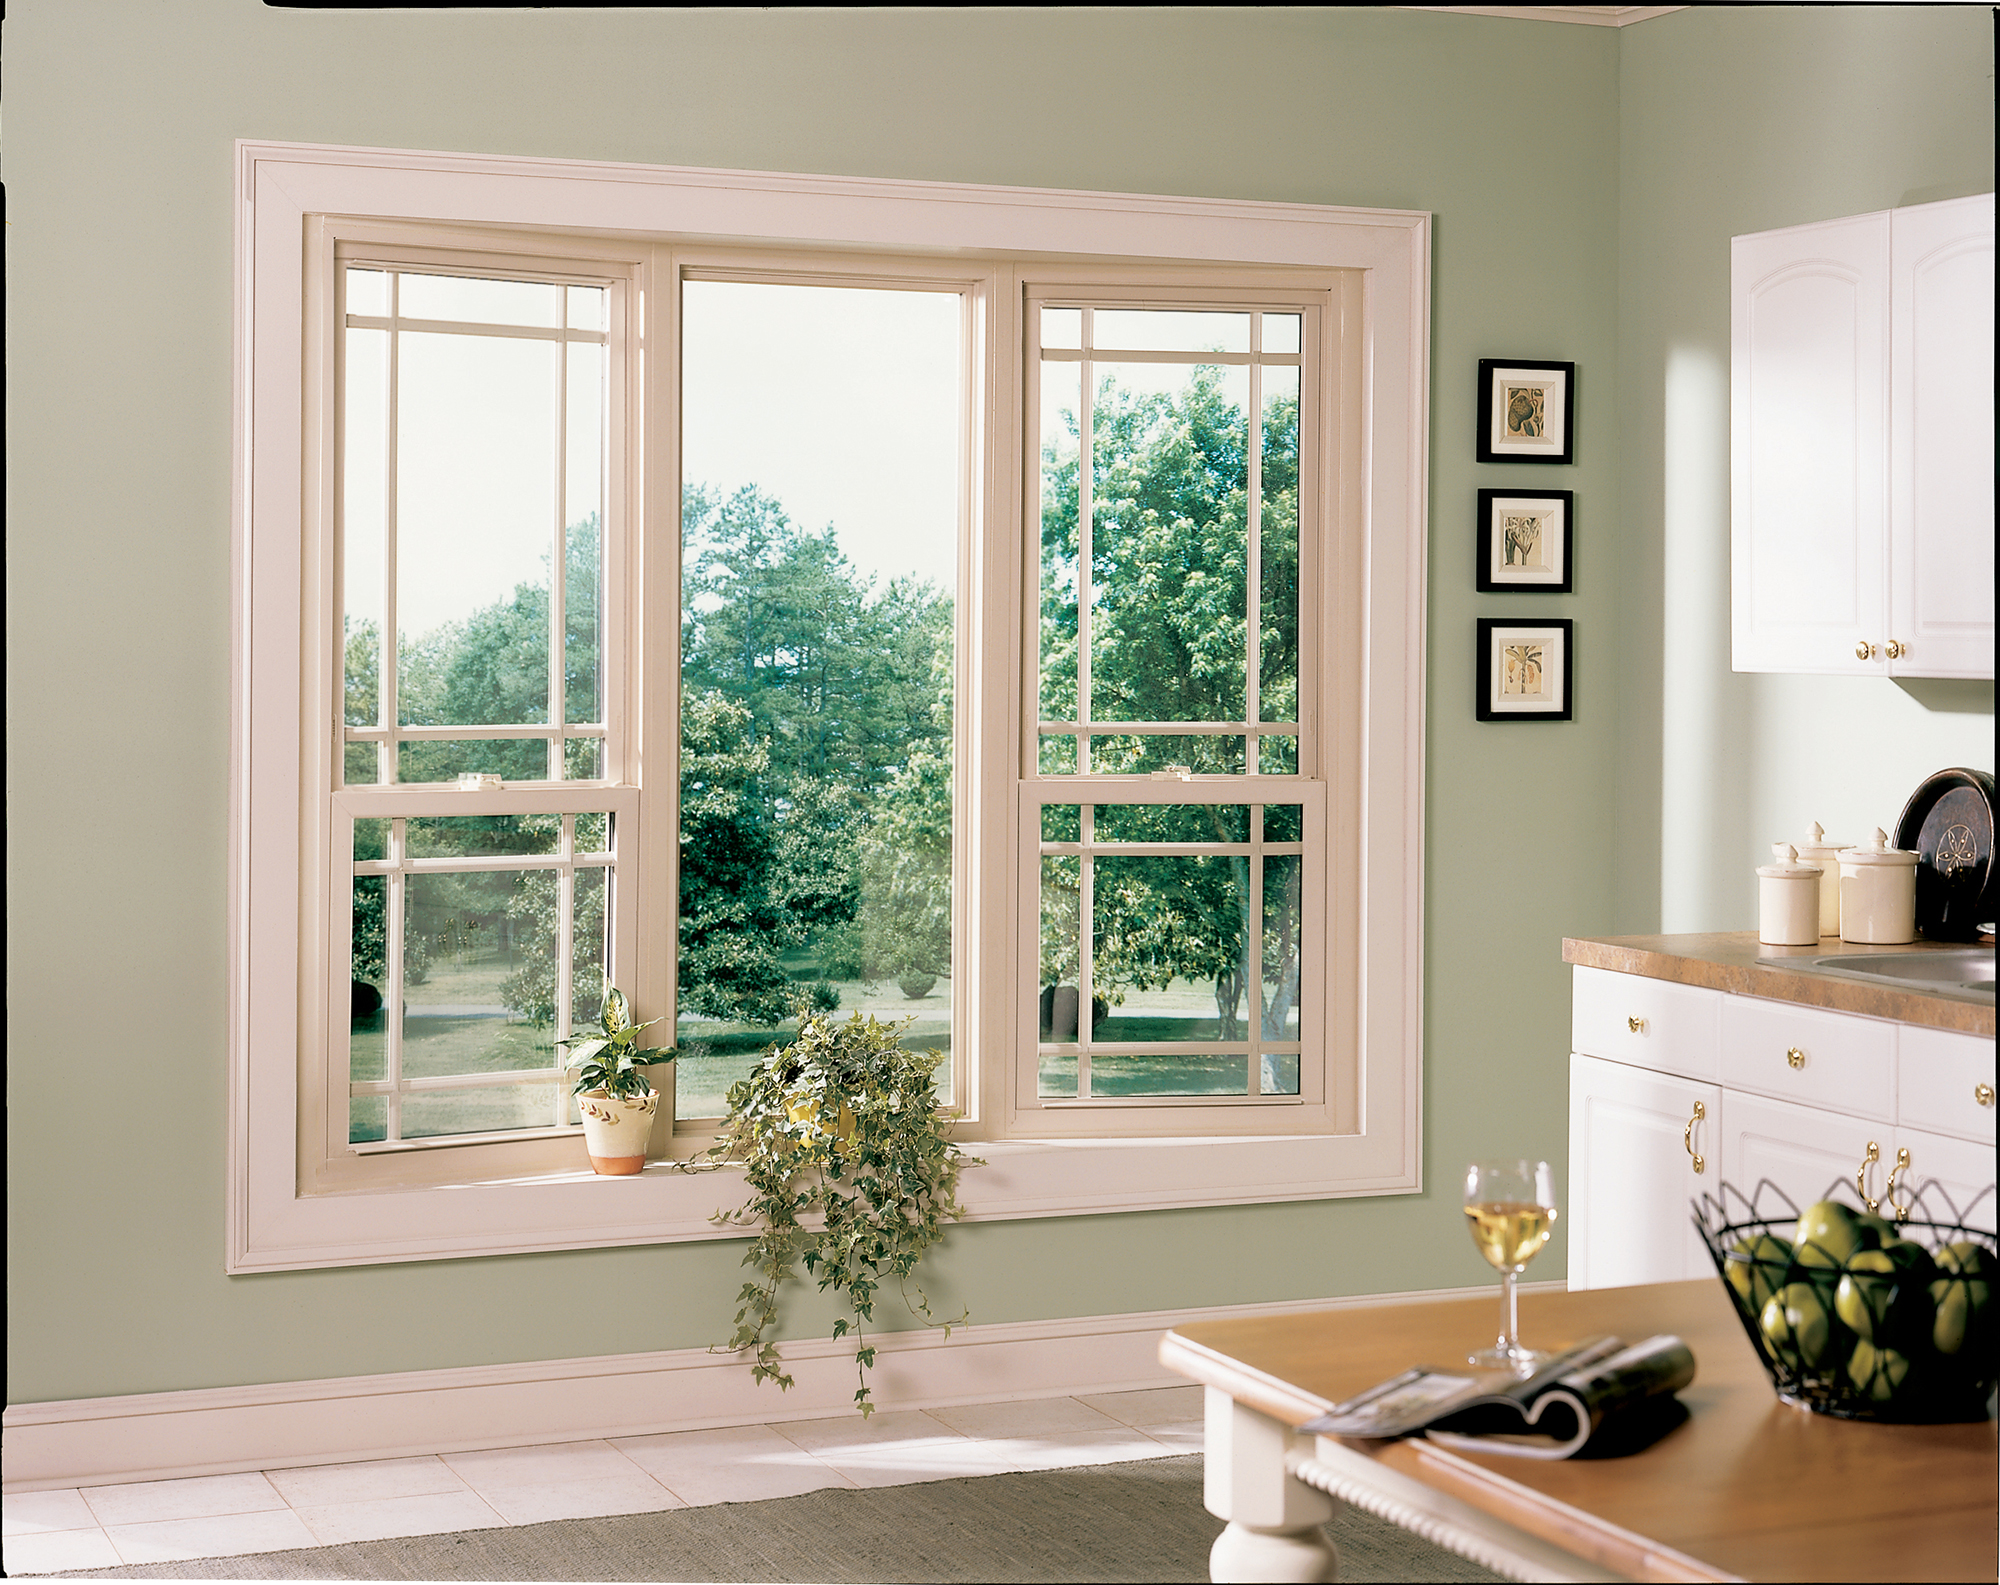 A perfect pair of craftsman double hung windows.